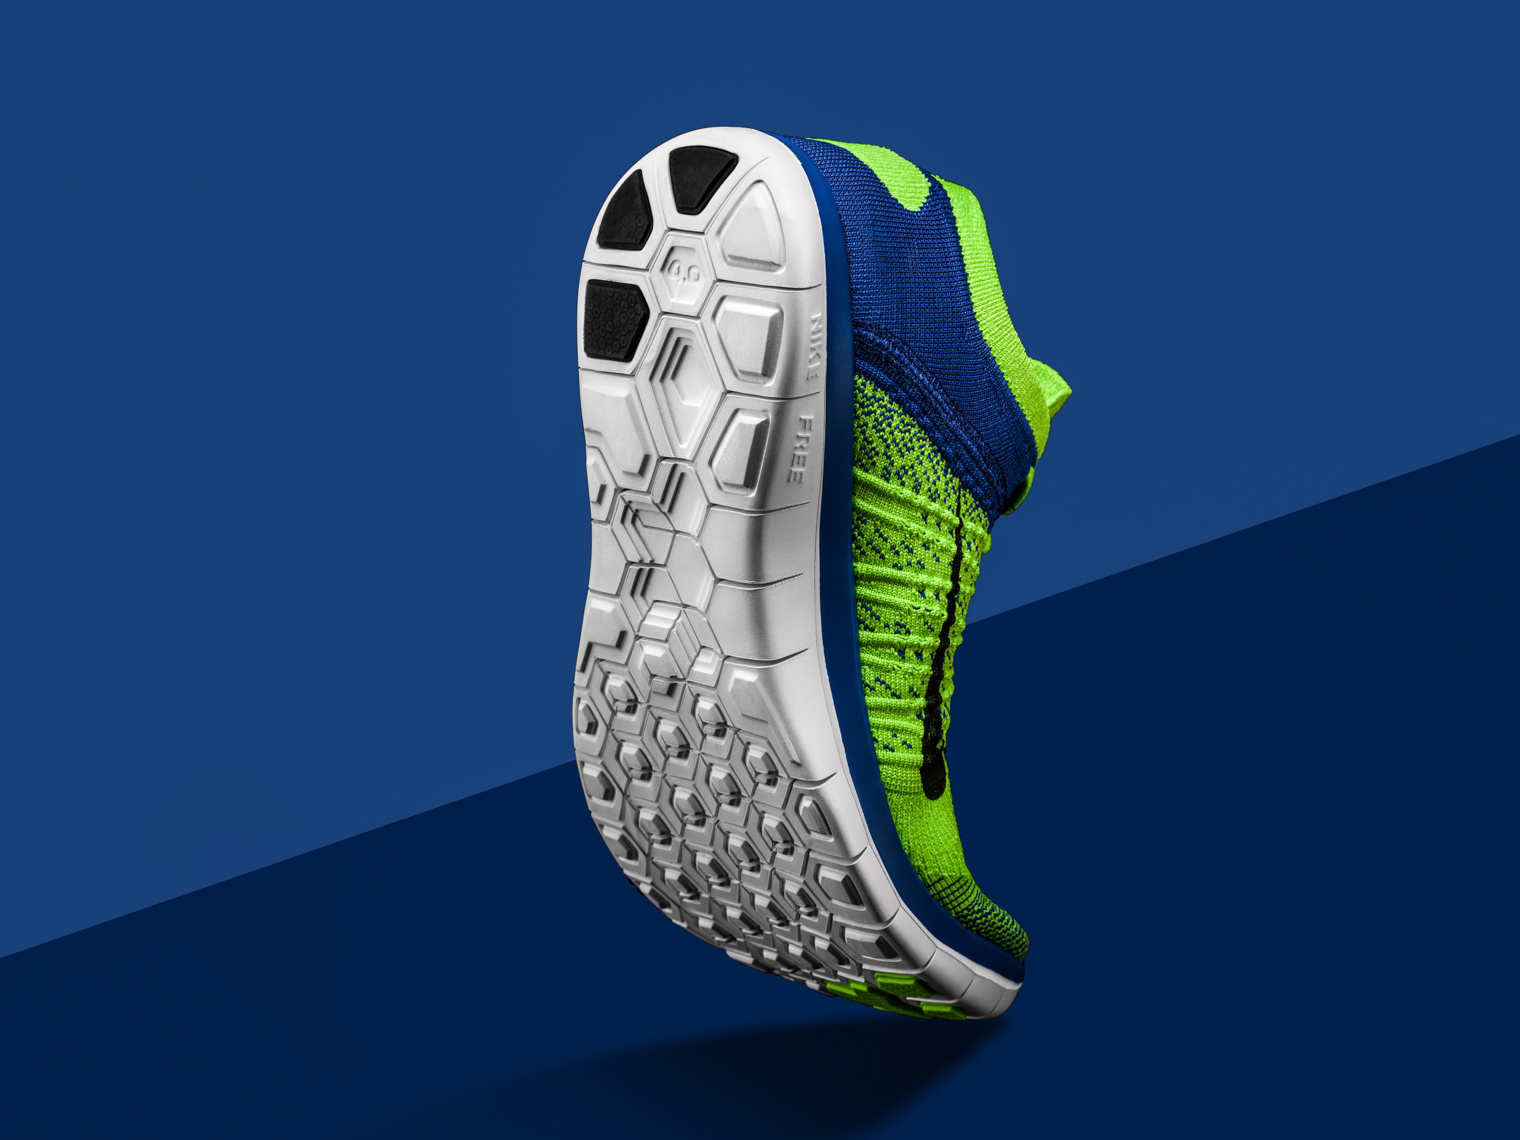 Nike-Free-4-flyknit-San-Francisco-Oakland-Product-Photographer-005201